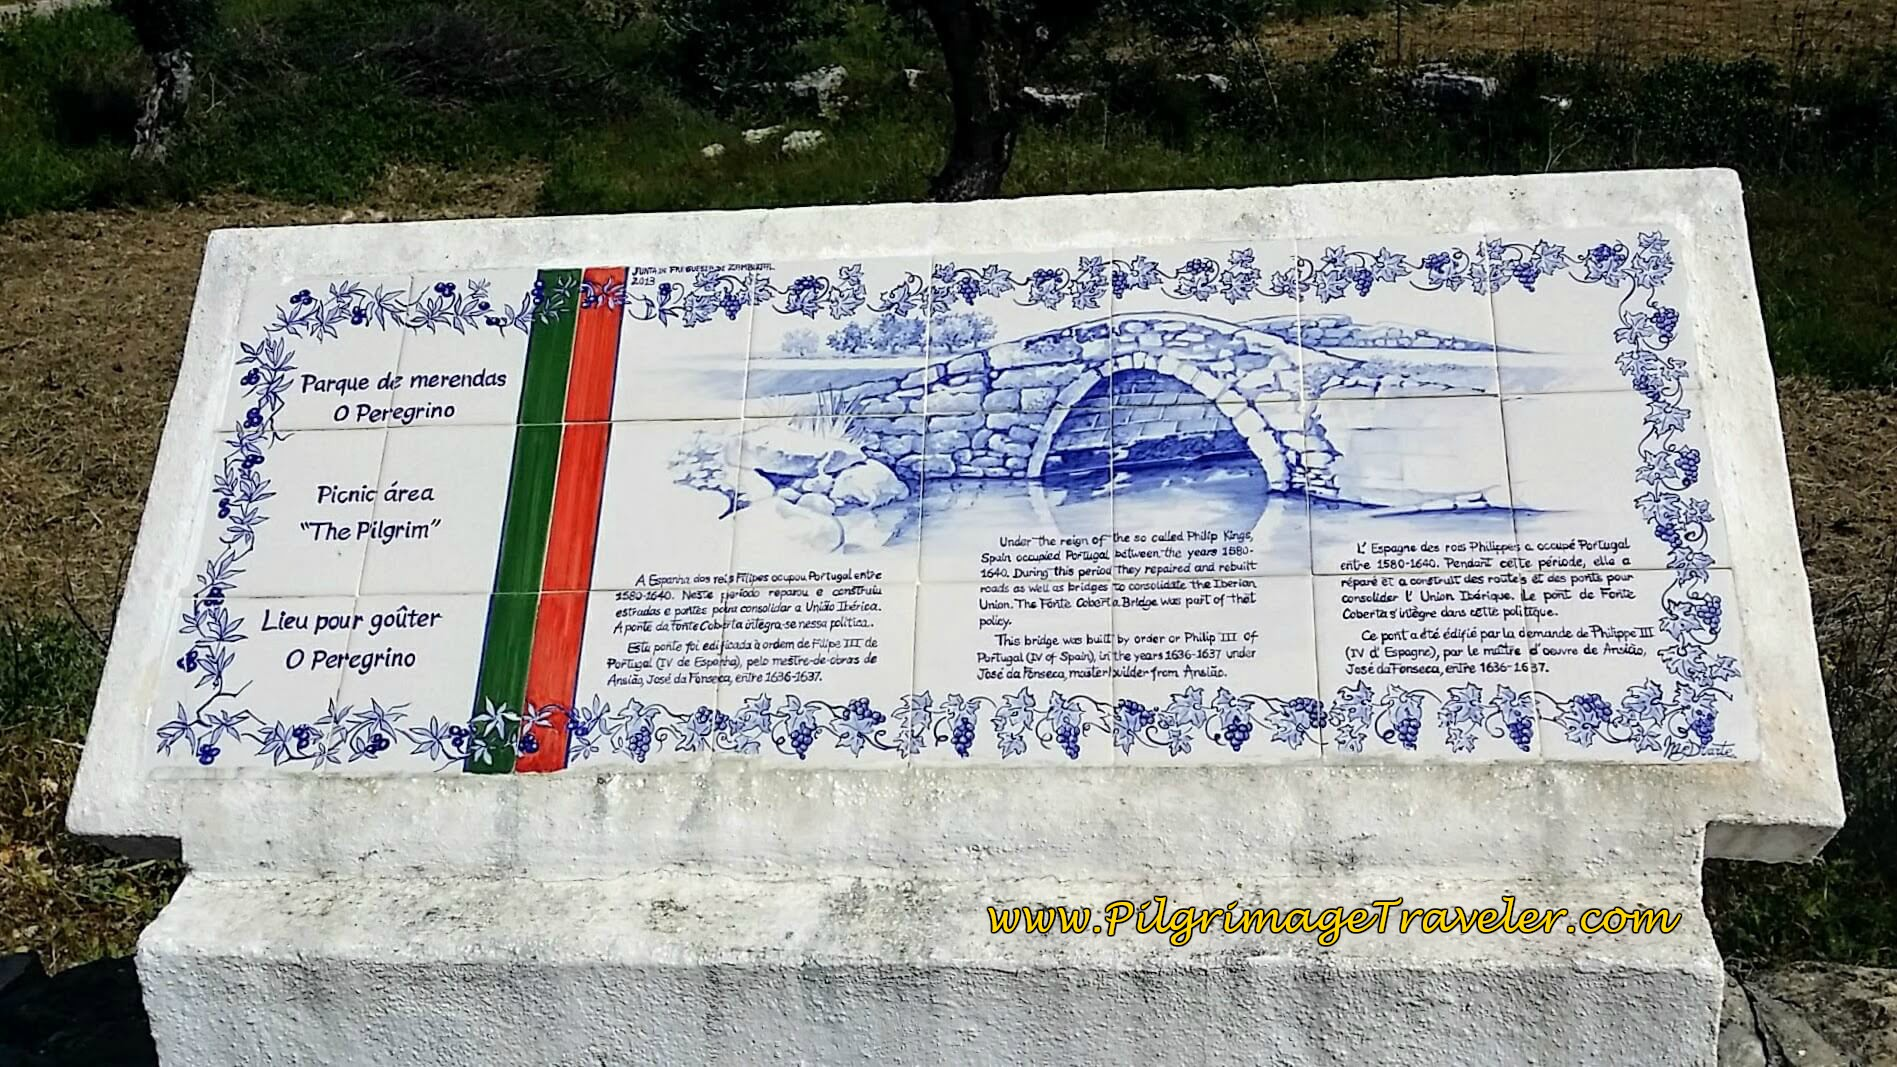 Information Board for Ponte Filipina, built at turn of 16th Century